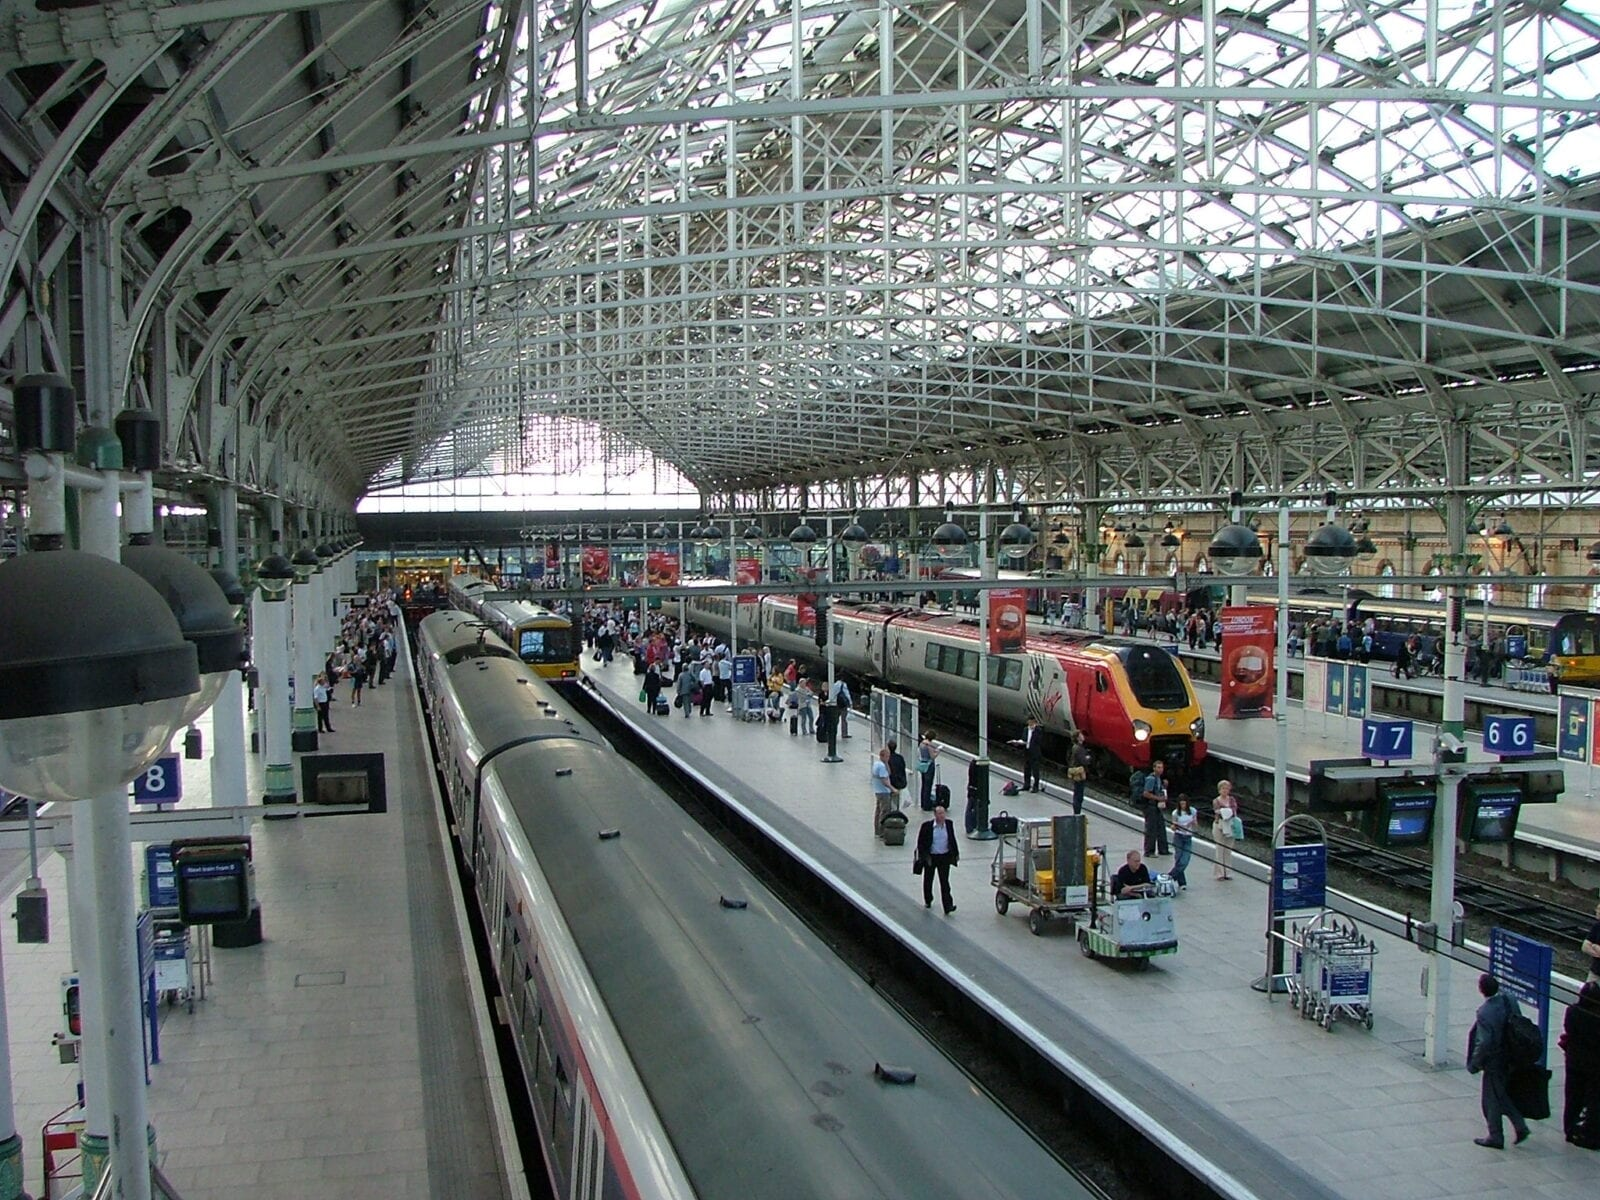 53 staff members at Manchester Piccadilly in self-isolation following COVID-19 outbreak, The Manc